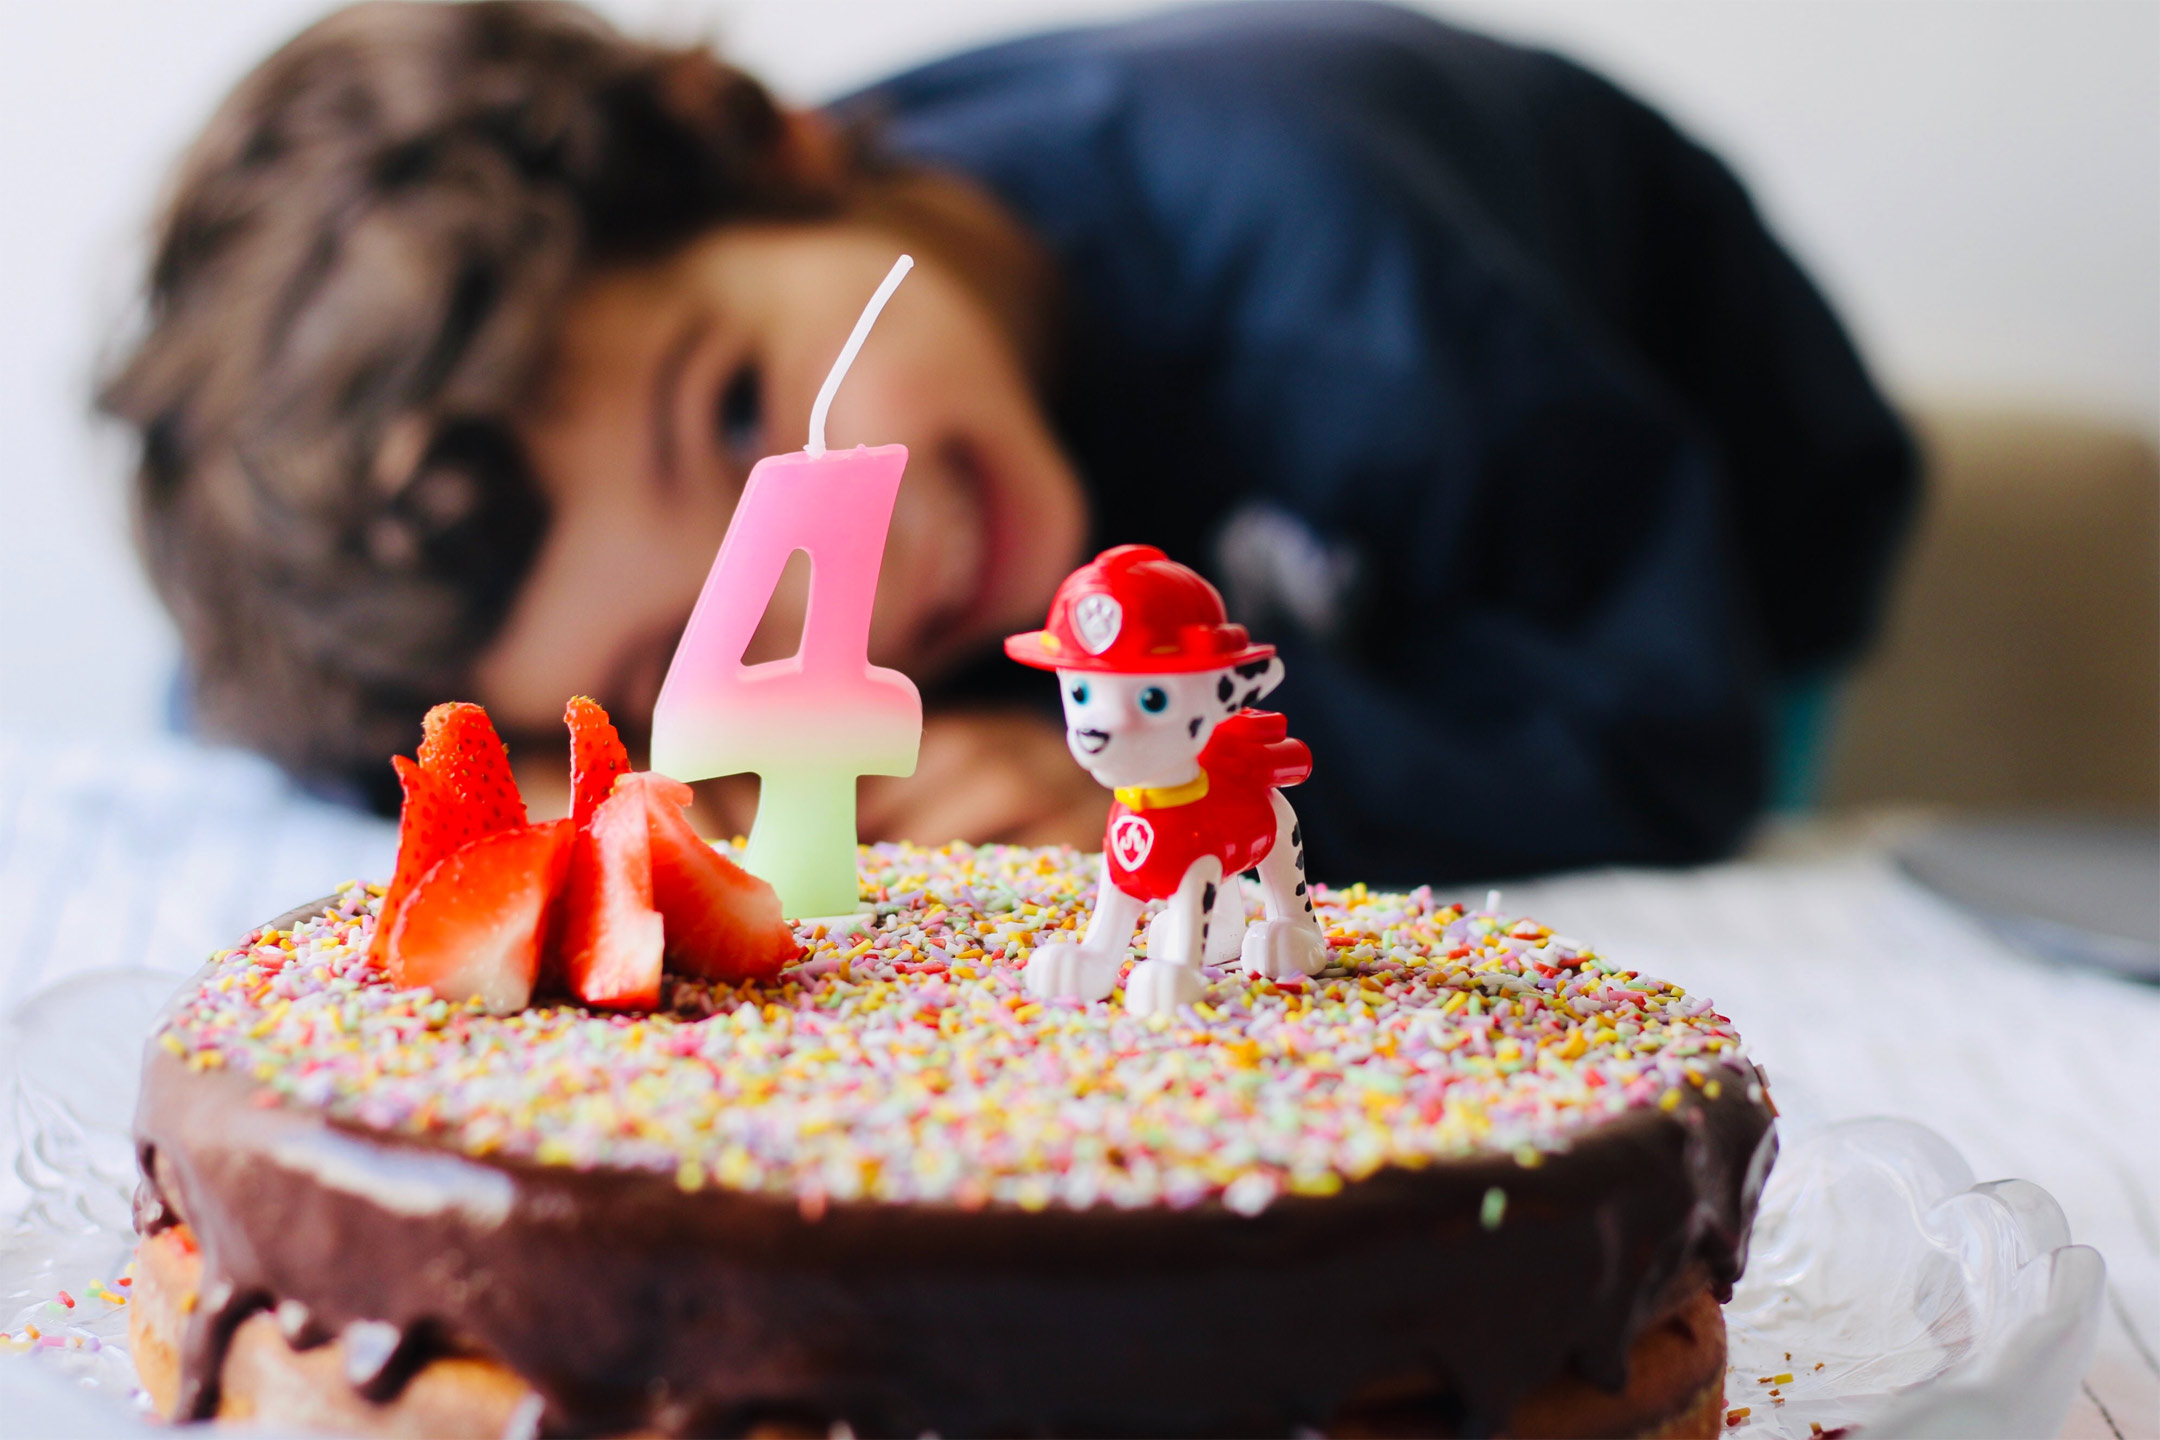 4yr-old-with-birthday-cake2160